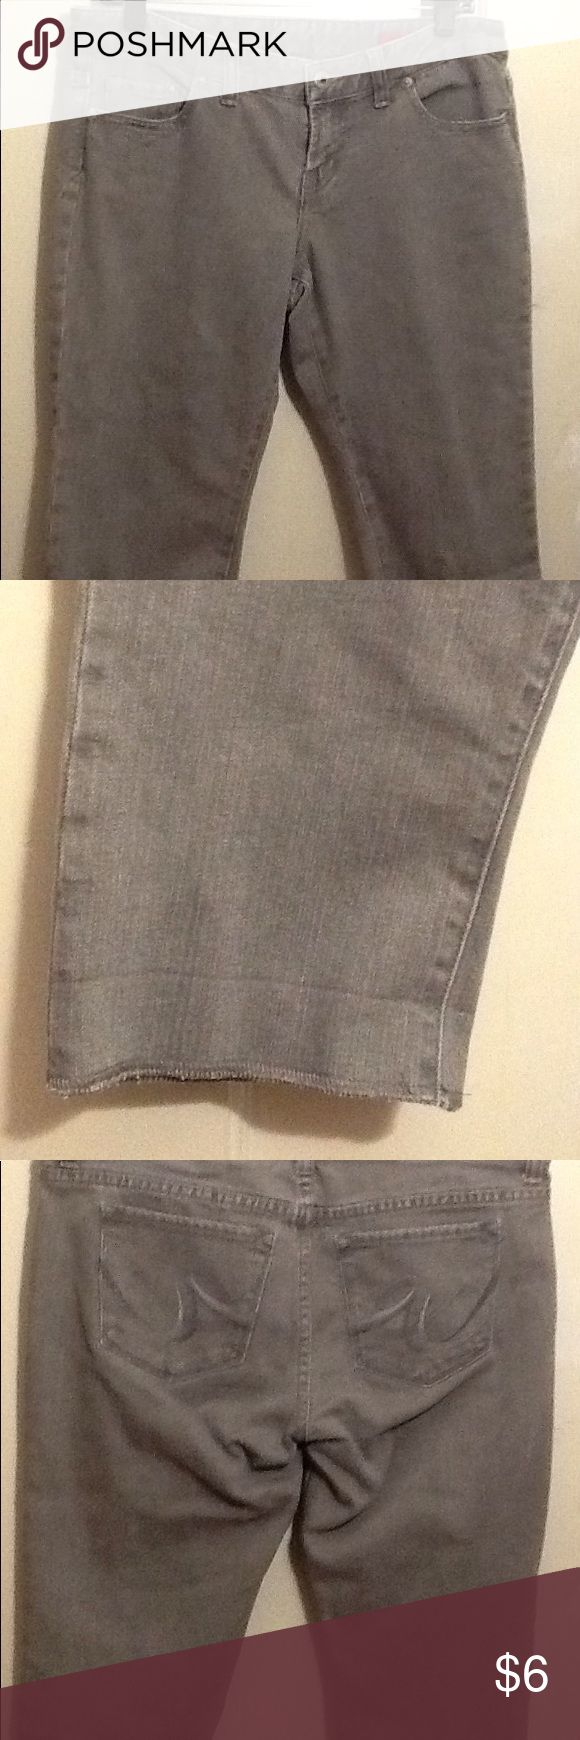 Women's short's These are women's cut off style long Jean short's. They are grey. X2 Shorts Jean Shorts